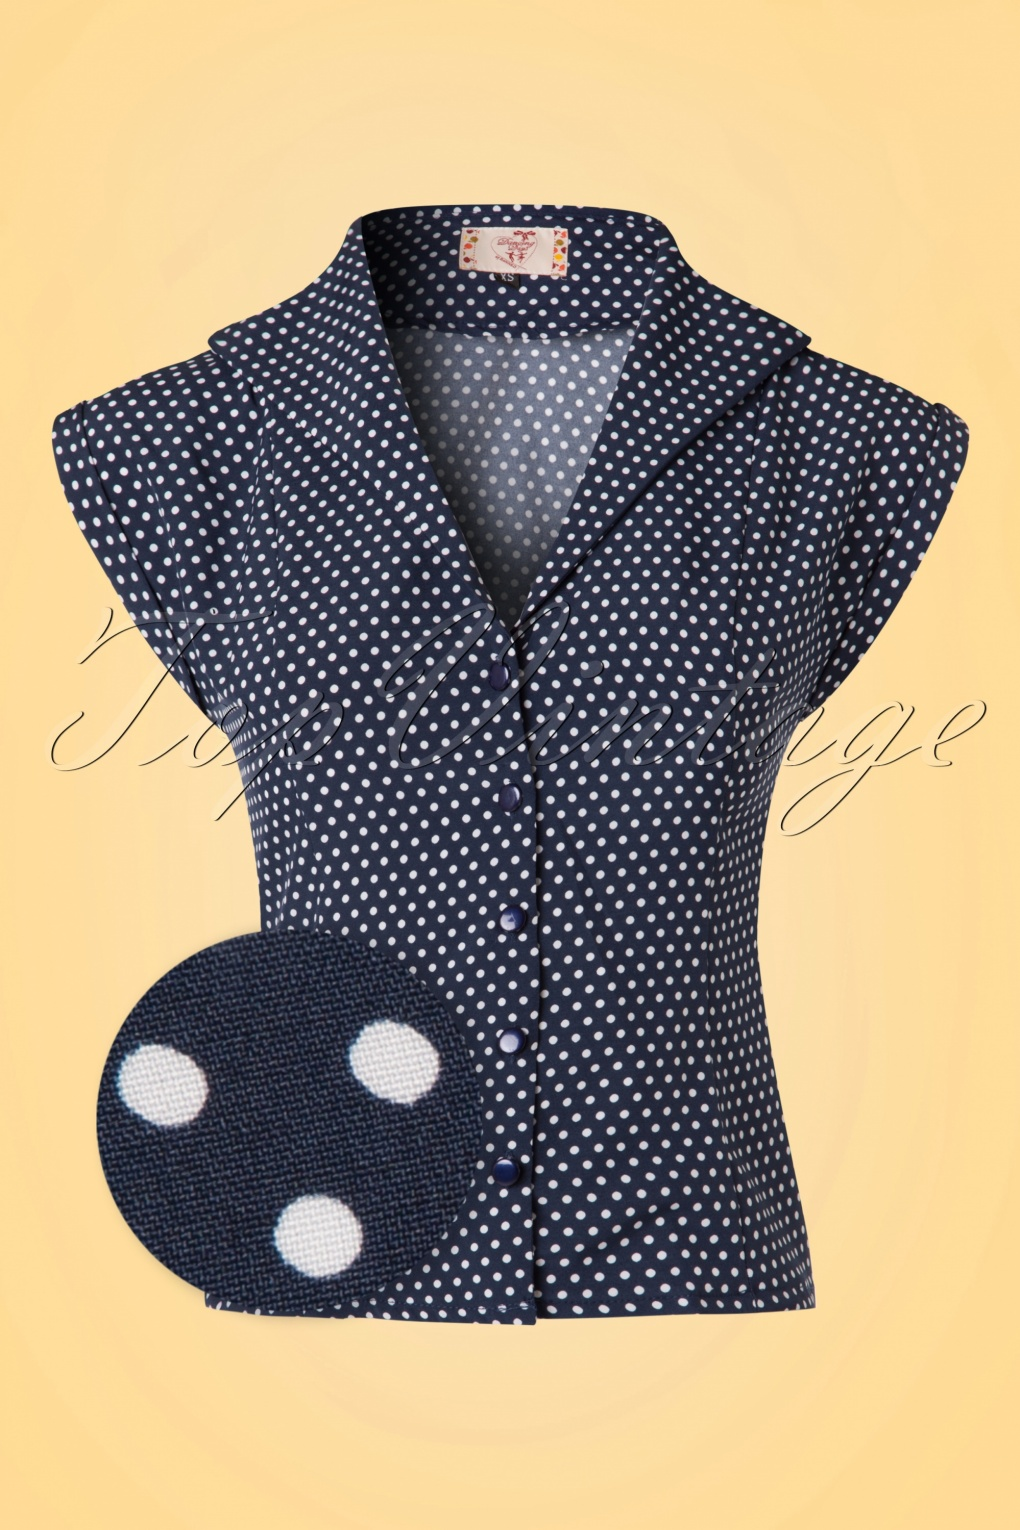 1950s Rockabilly & Pinup Tops, Shirts, Blouses 50s Lovely Day Polkadot Blouse in Navy and White £25.64 AT vintagedancer.com